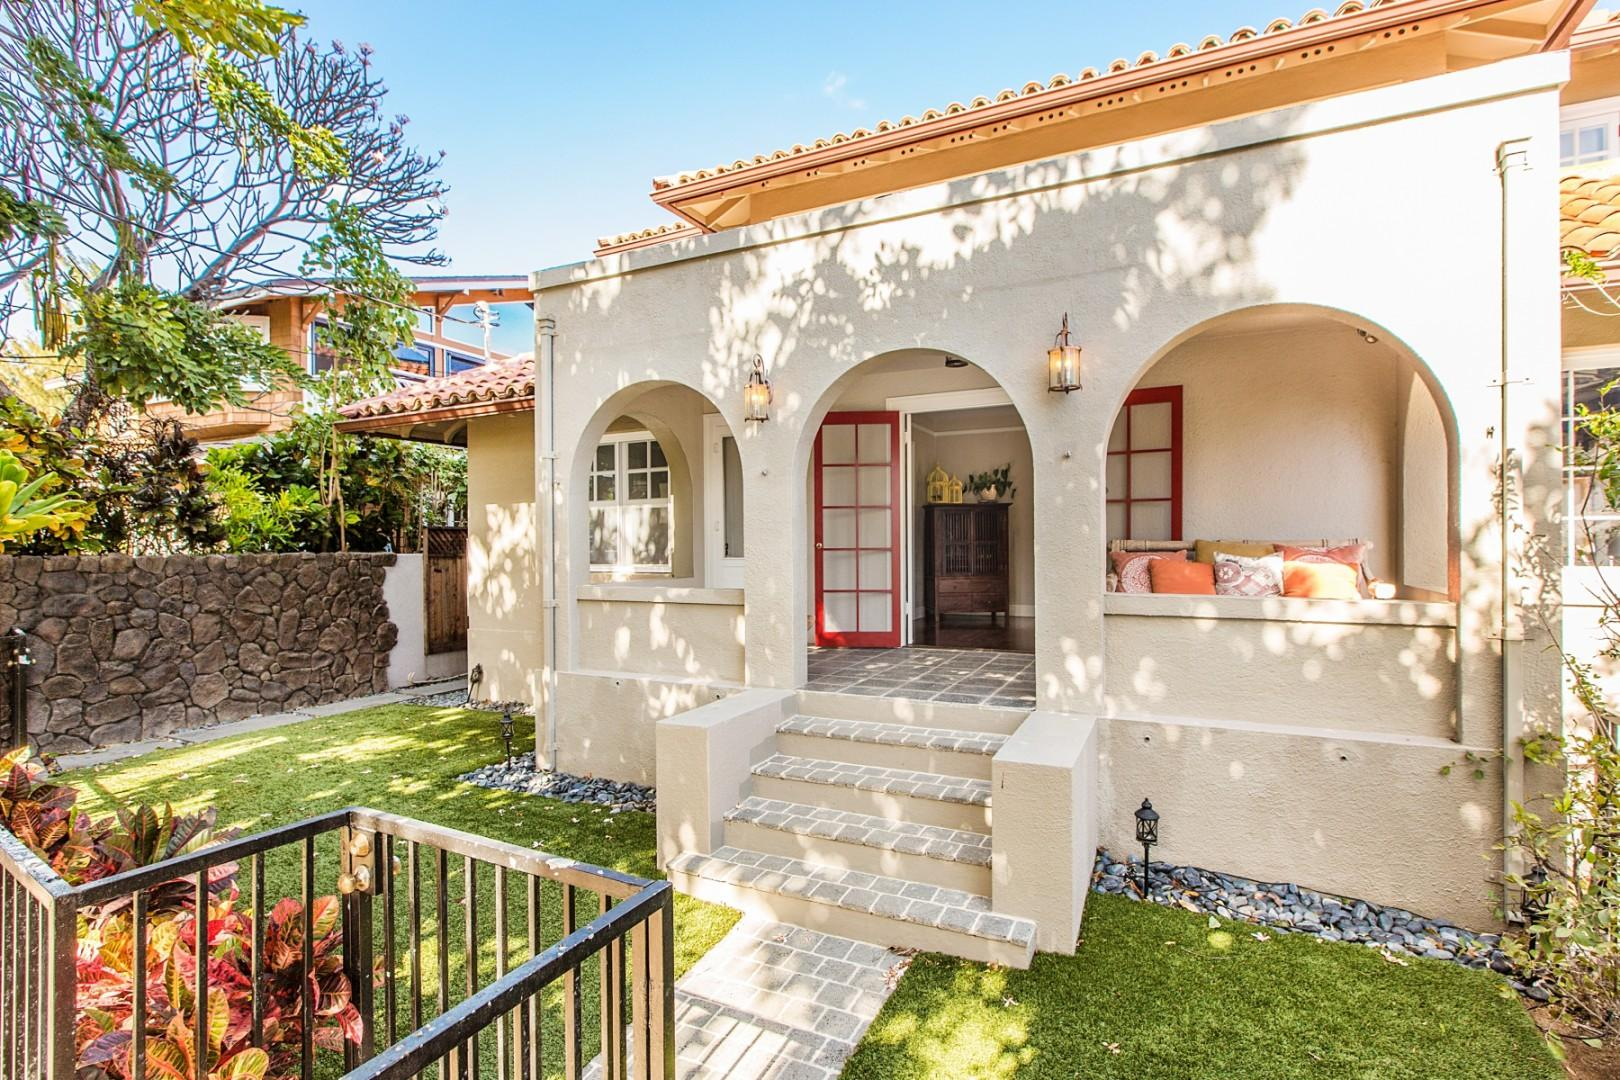 Spanish Colonial Revival style.